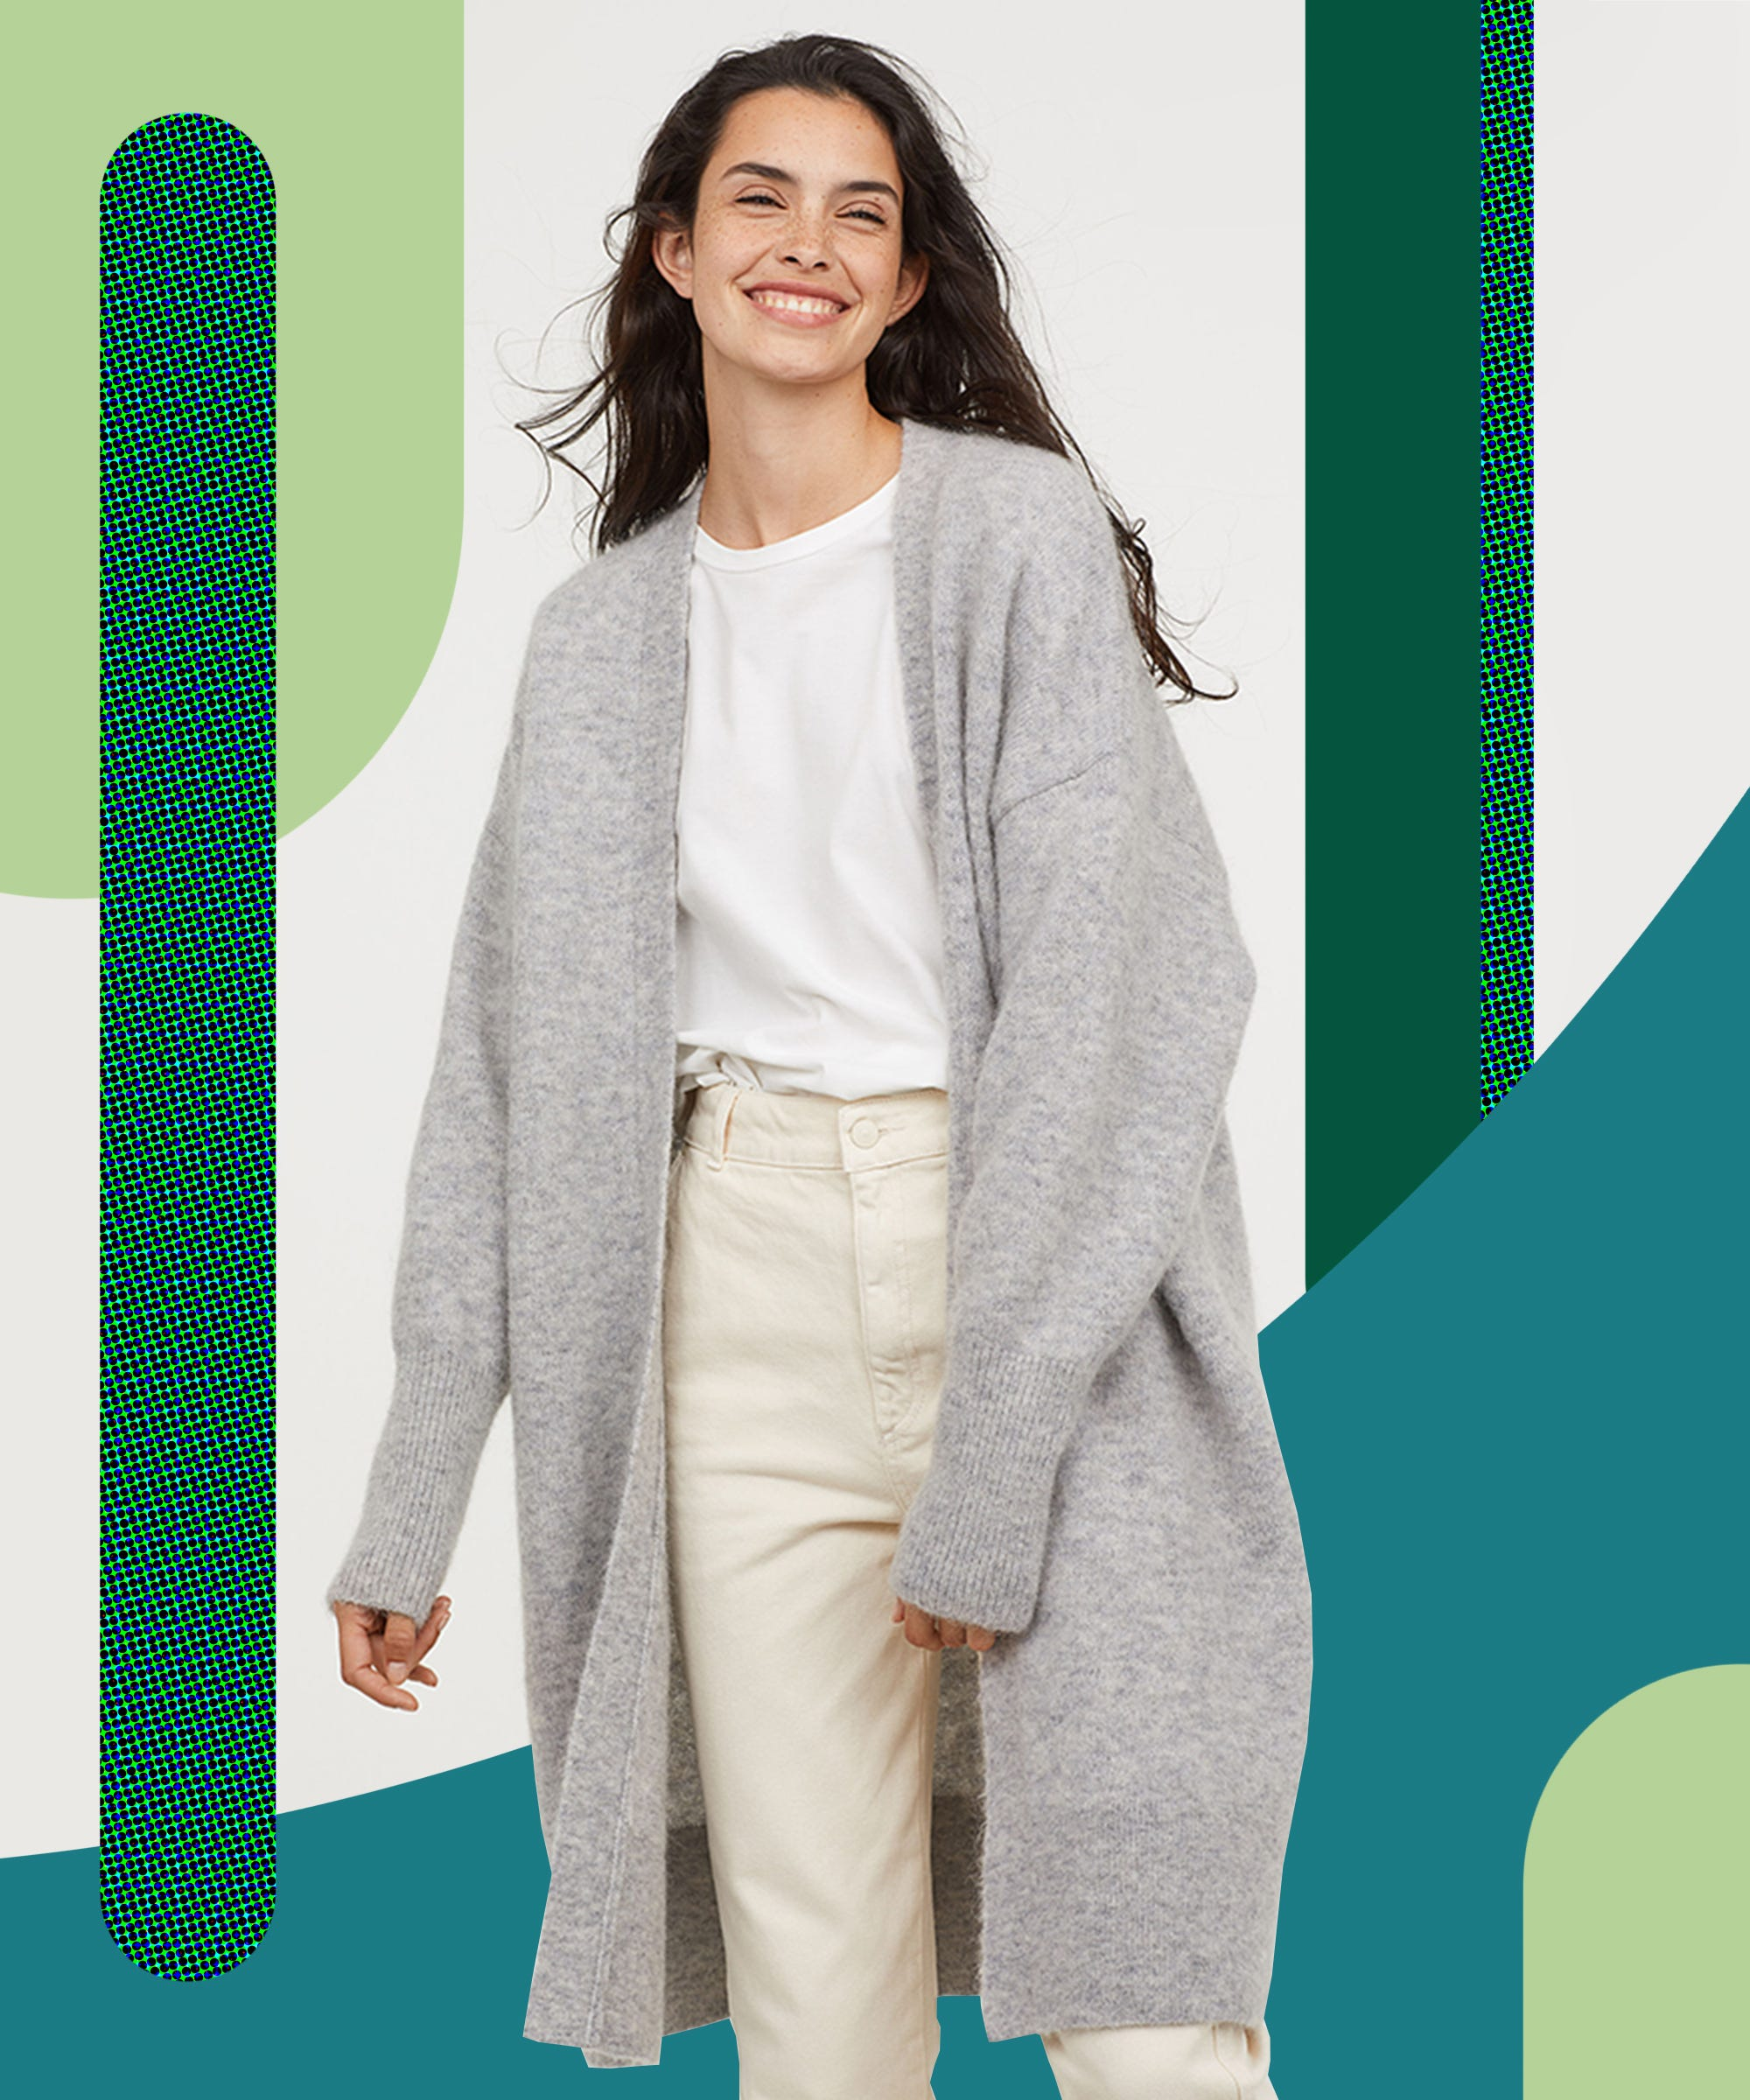 72f24b59fc7 Chic Comfortable Travel Outfits To Wear On A Plane